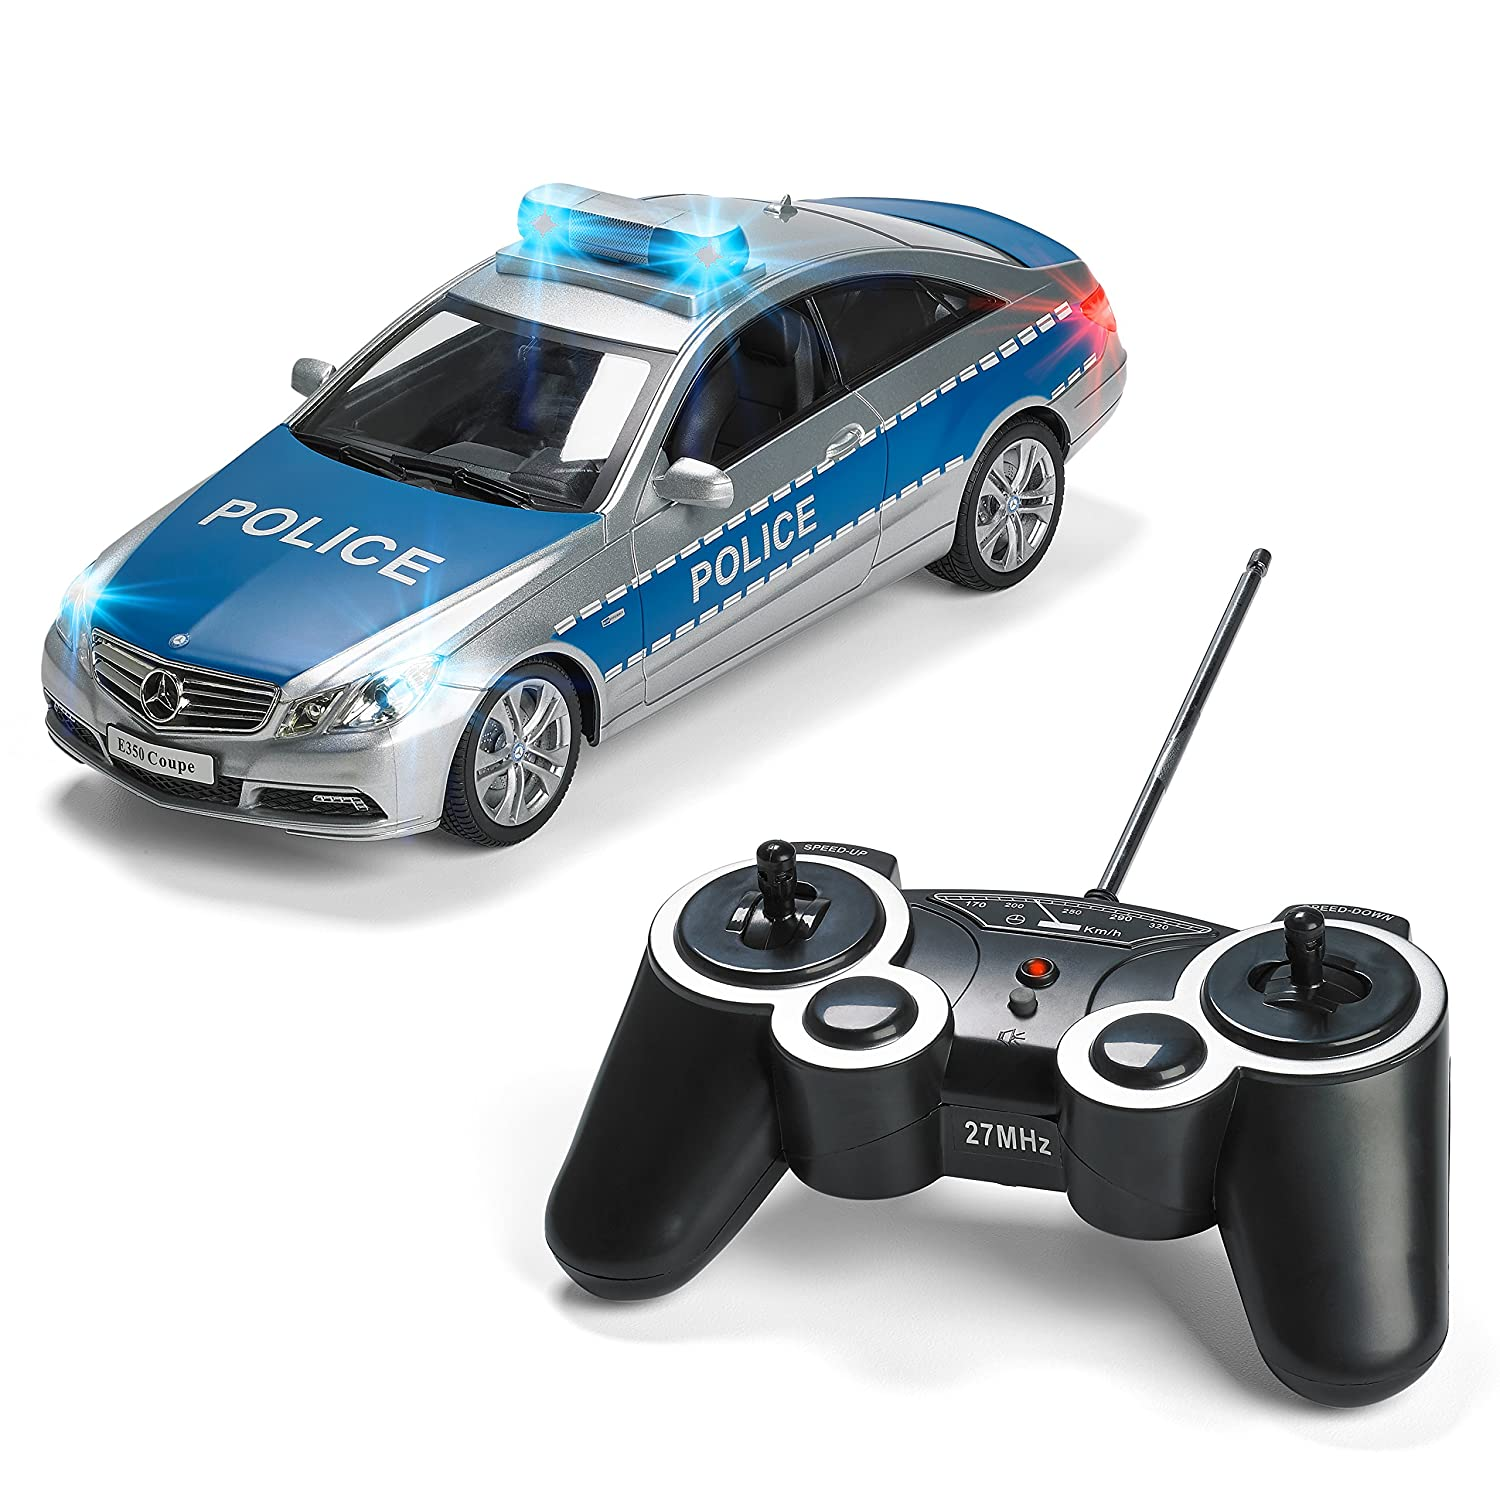 remote control car toys r us with 172594084885 on Watch likewise 32465185098 moreover 191219902324 furthermore Hot Girls And Pickup Trucks besides 32785811206.